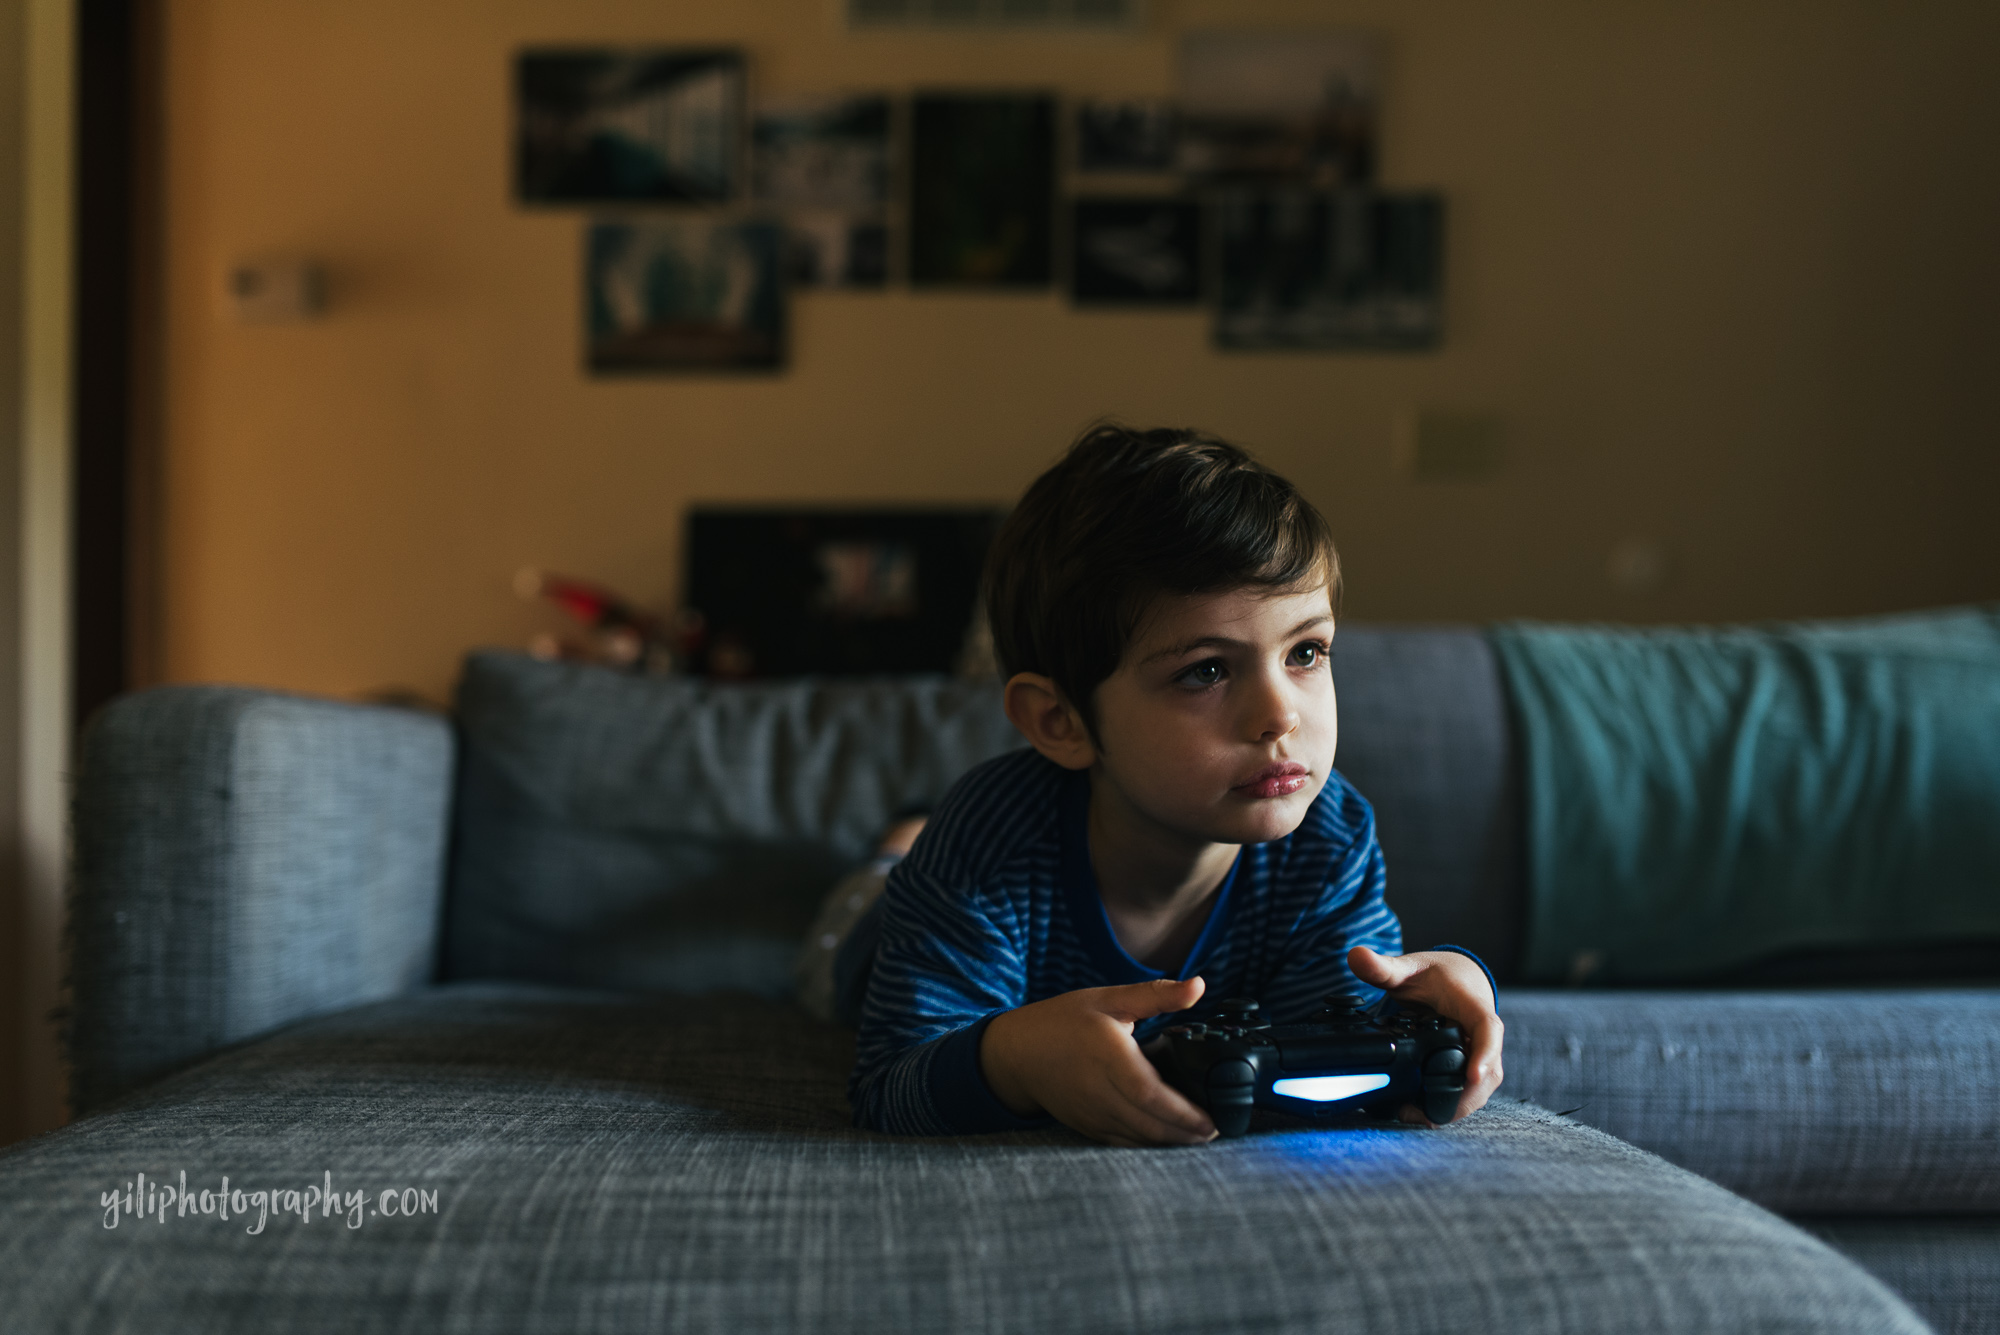 seattle toddler holding video game controller